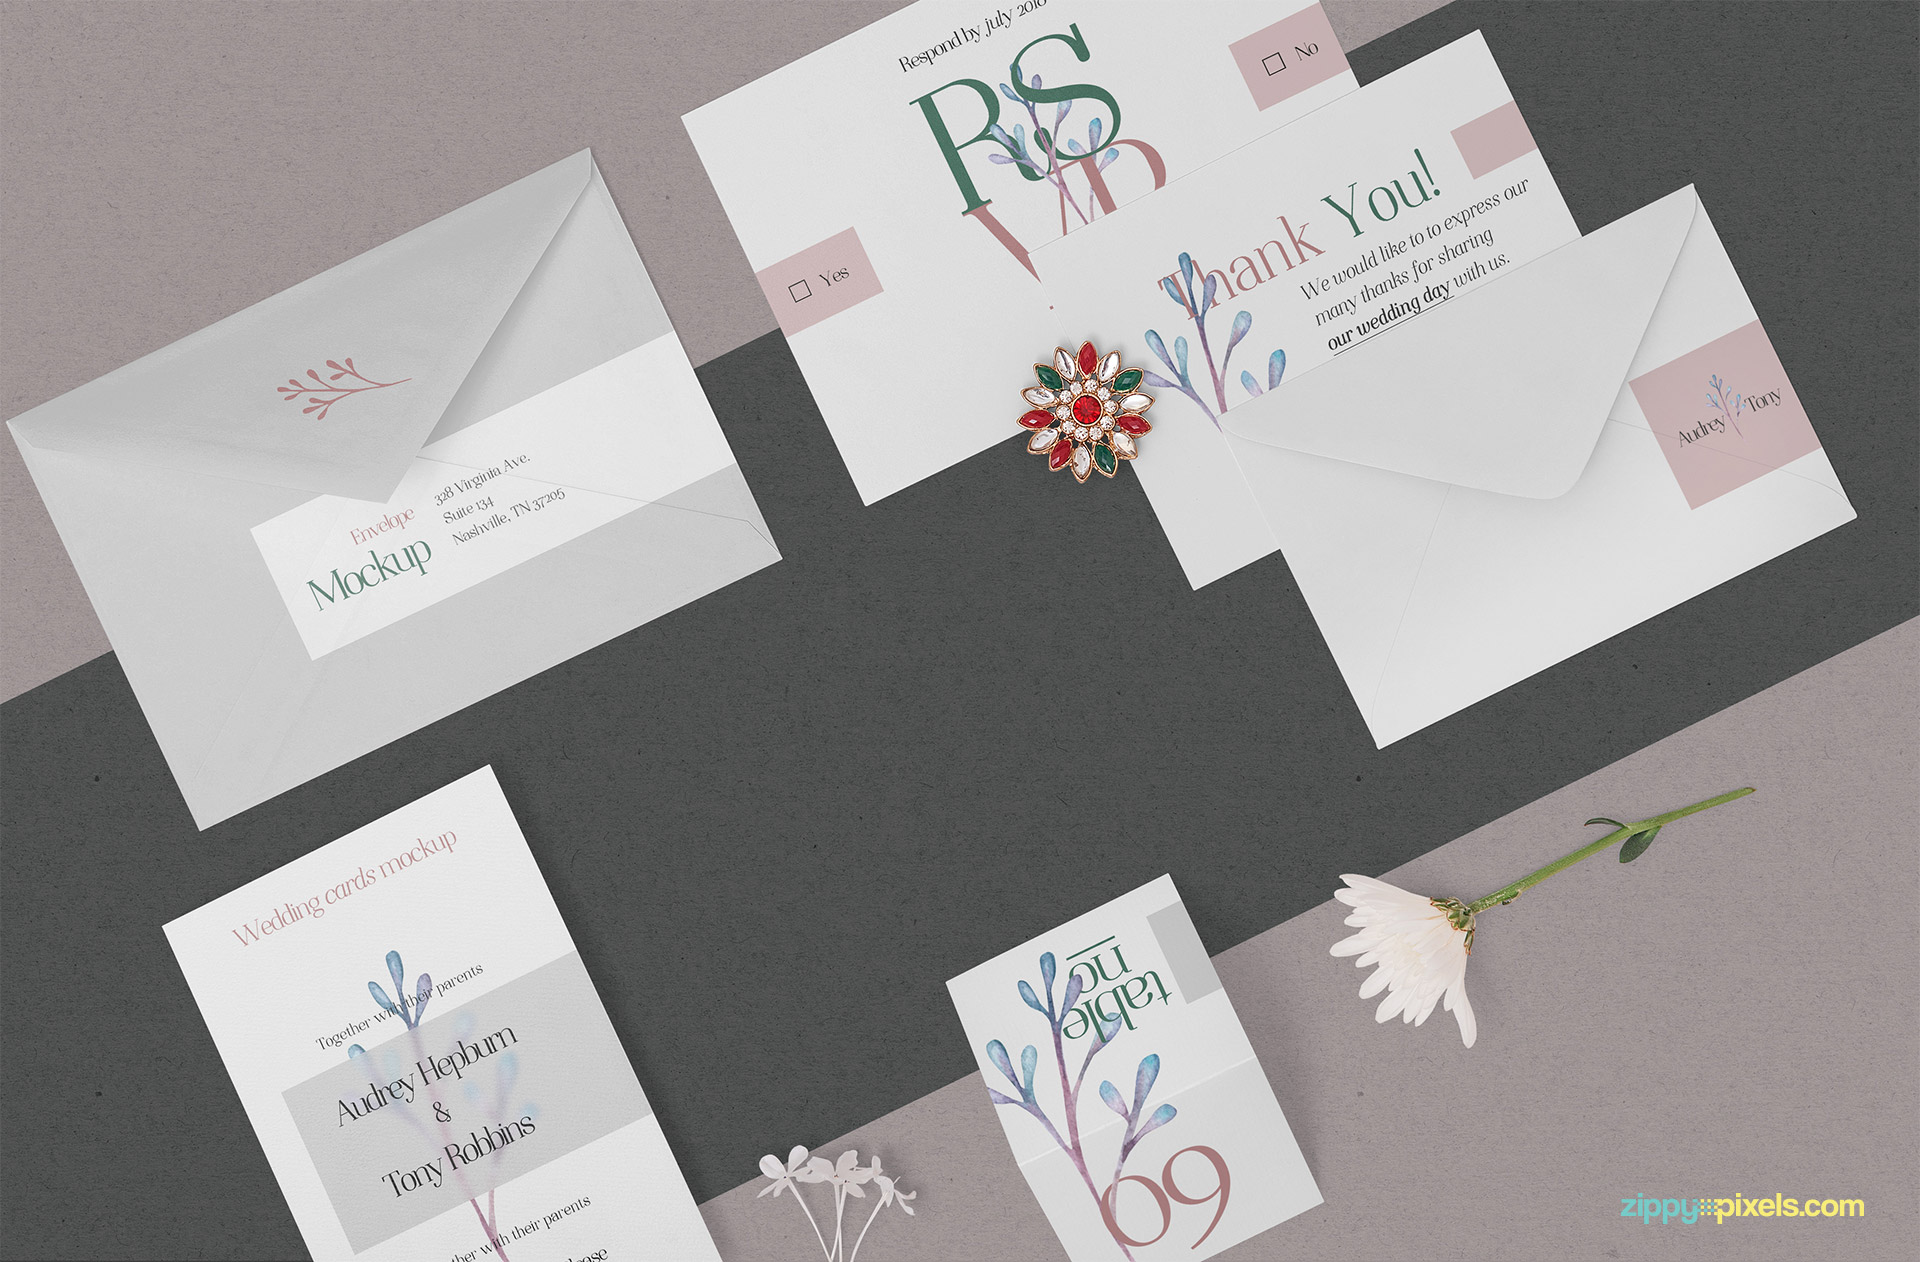 Free elegant wedding stationery mockup.